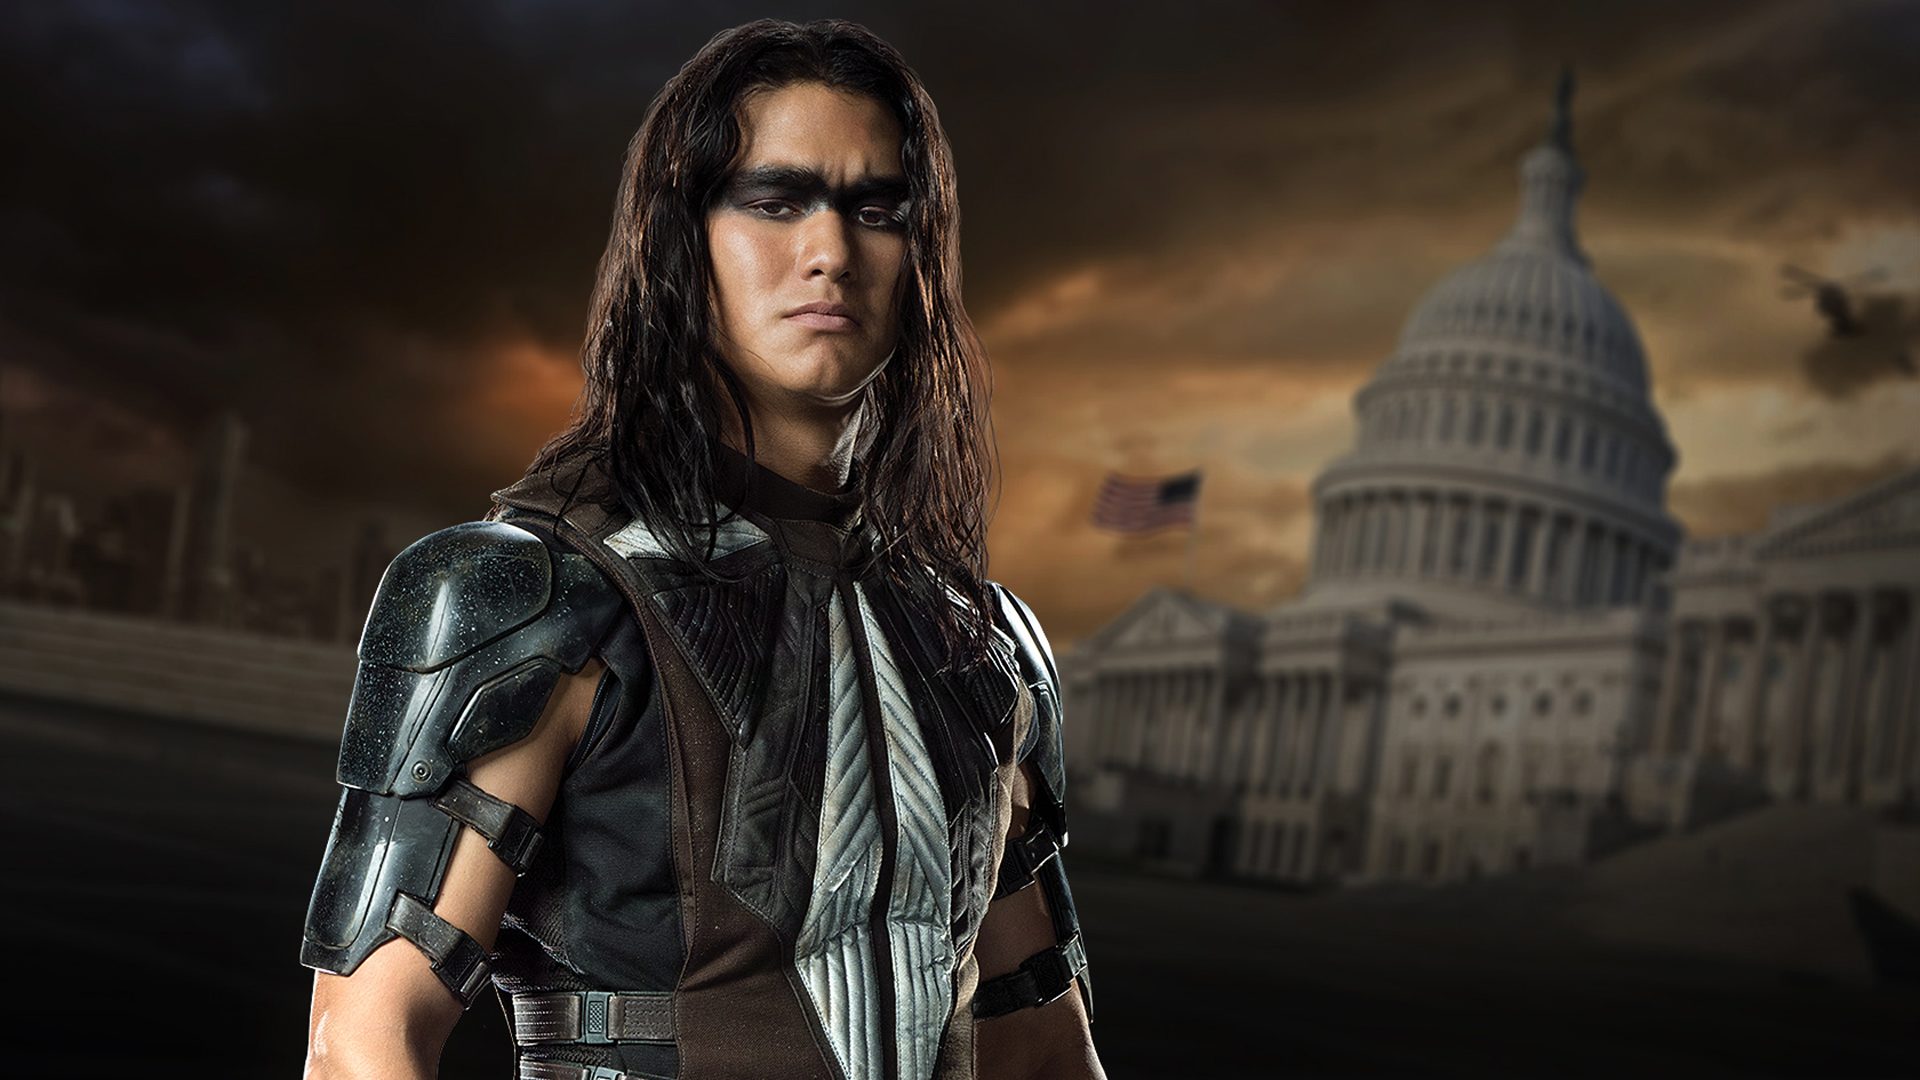 booboo stewart as warpath in x men days of future past 2014 movie hd    X Men Warpath Booboo Stewart